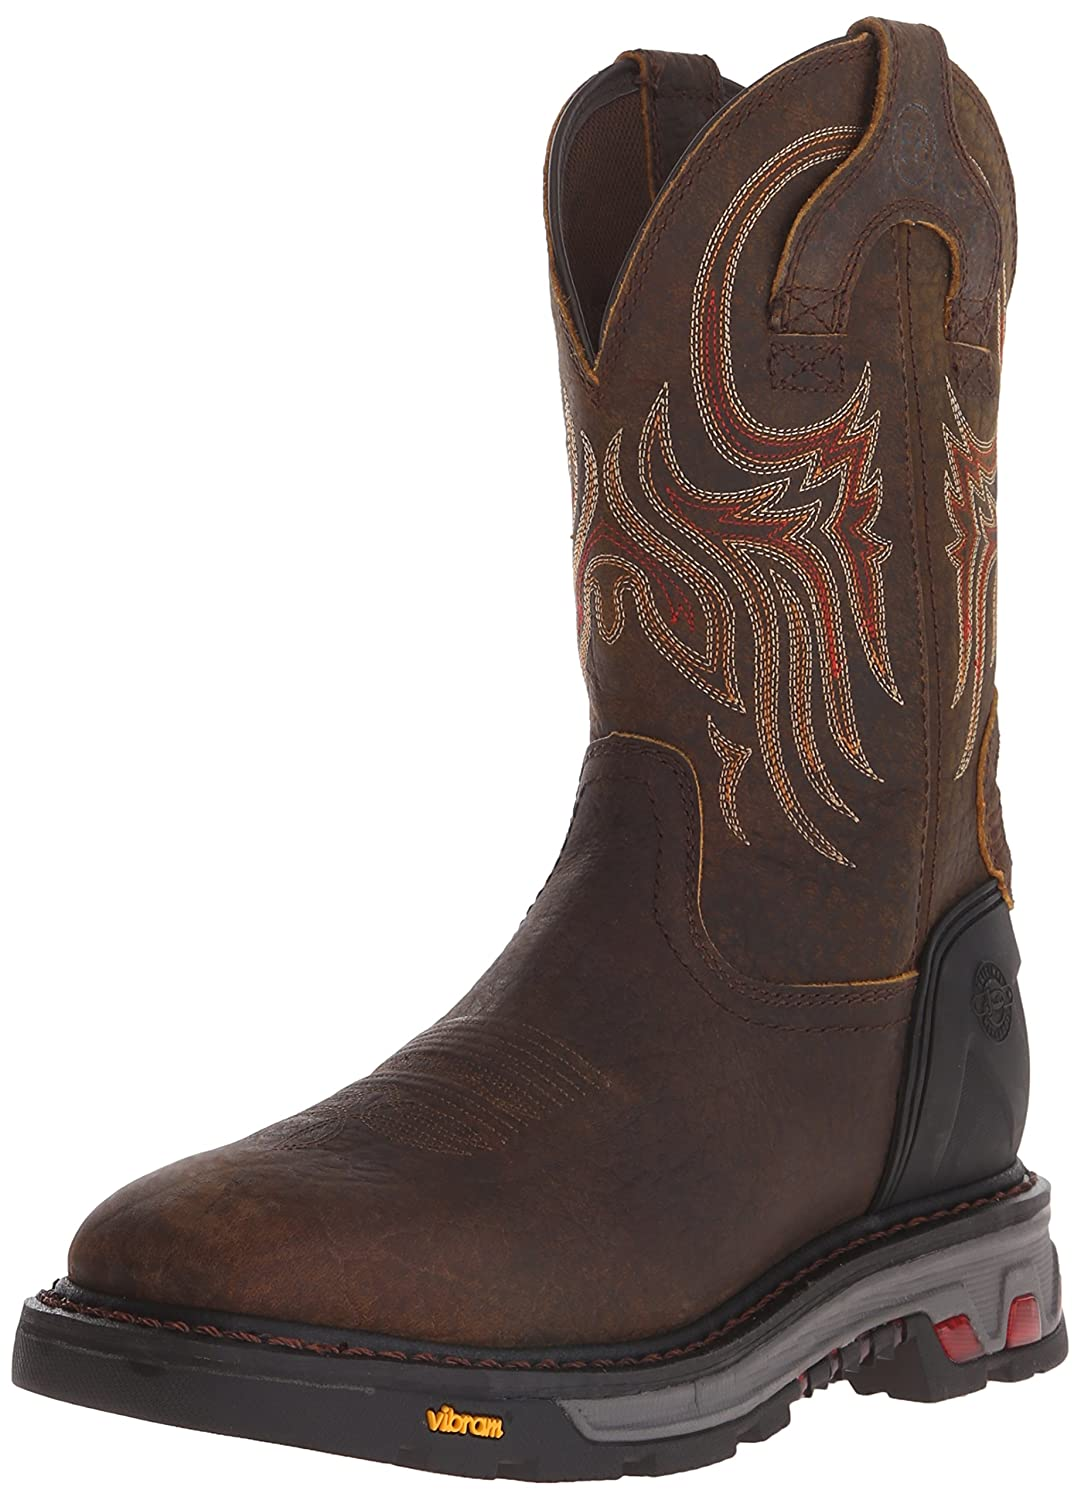 Justin Boots Men's Commander X-5 WK2110 Work Boots B00V4XOGT8 13 2E US|Tumbled Mahogany Brown Buffalo